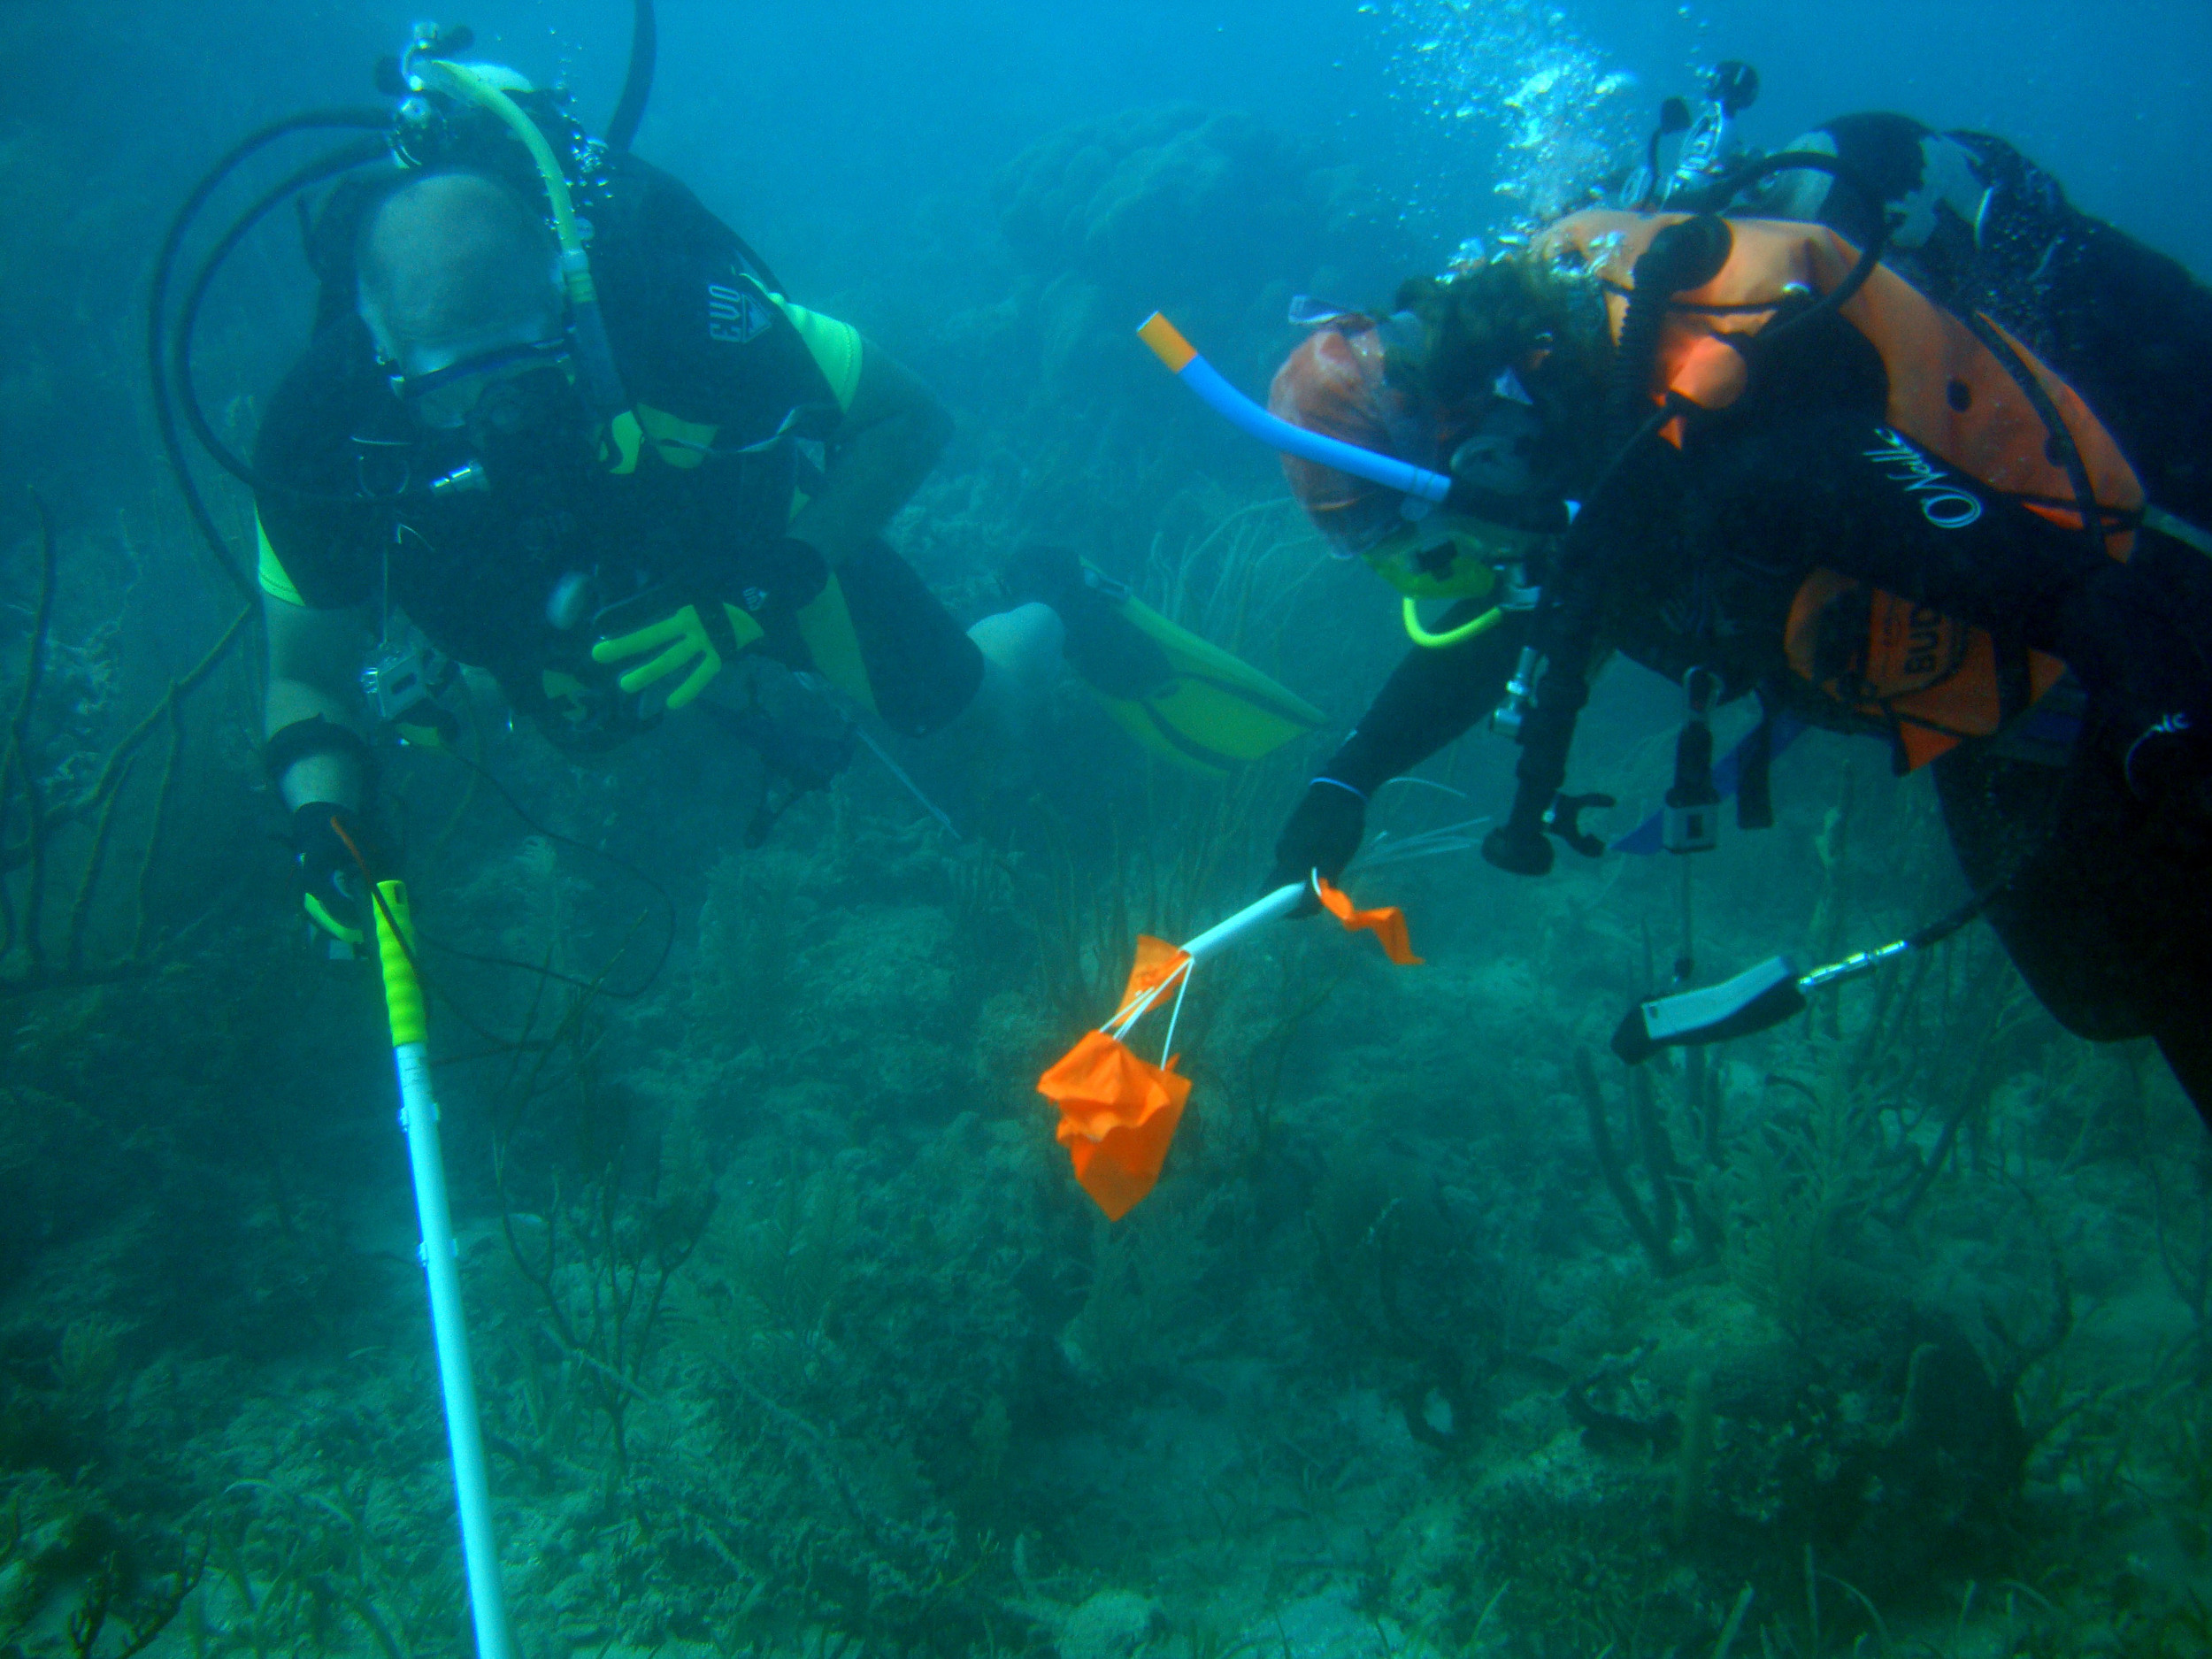 Raimund and Nikki using the DX200 by El Morro in Monte Cristi Bay